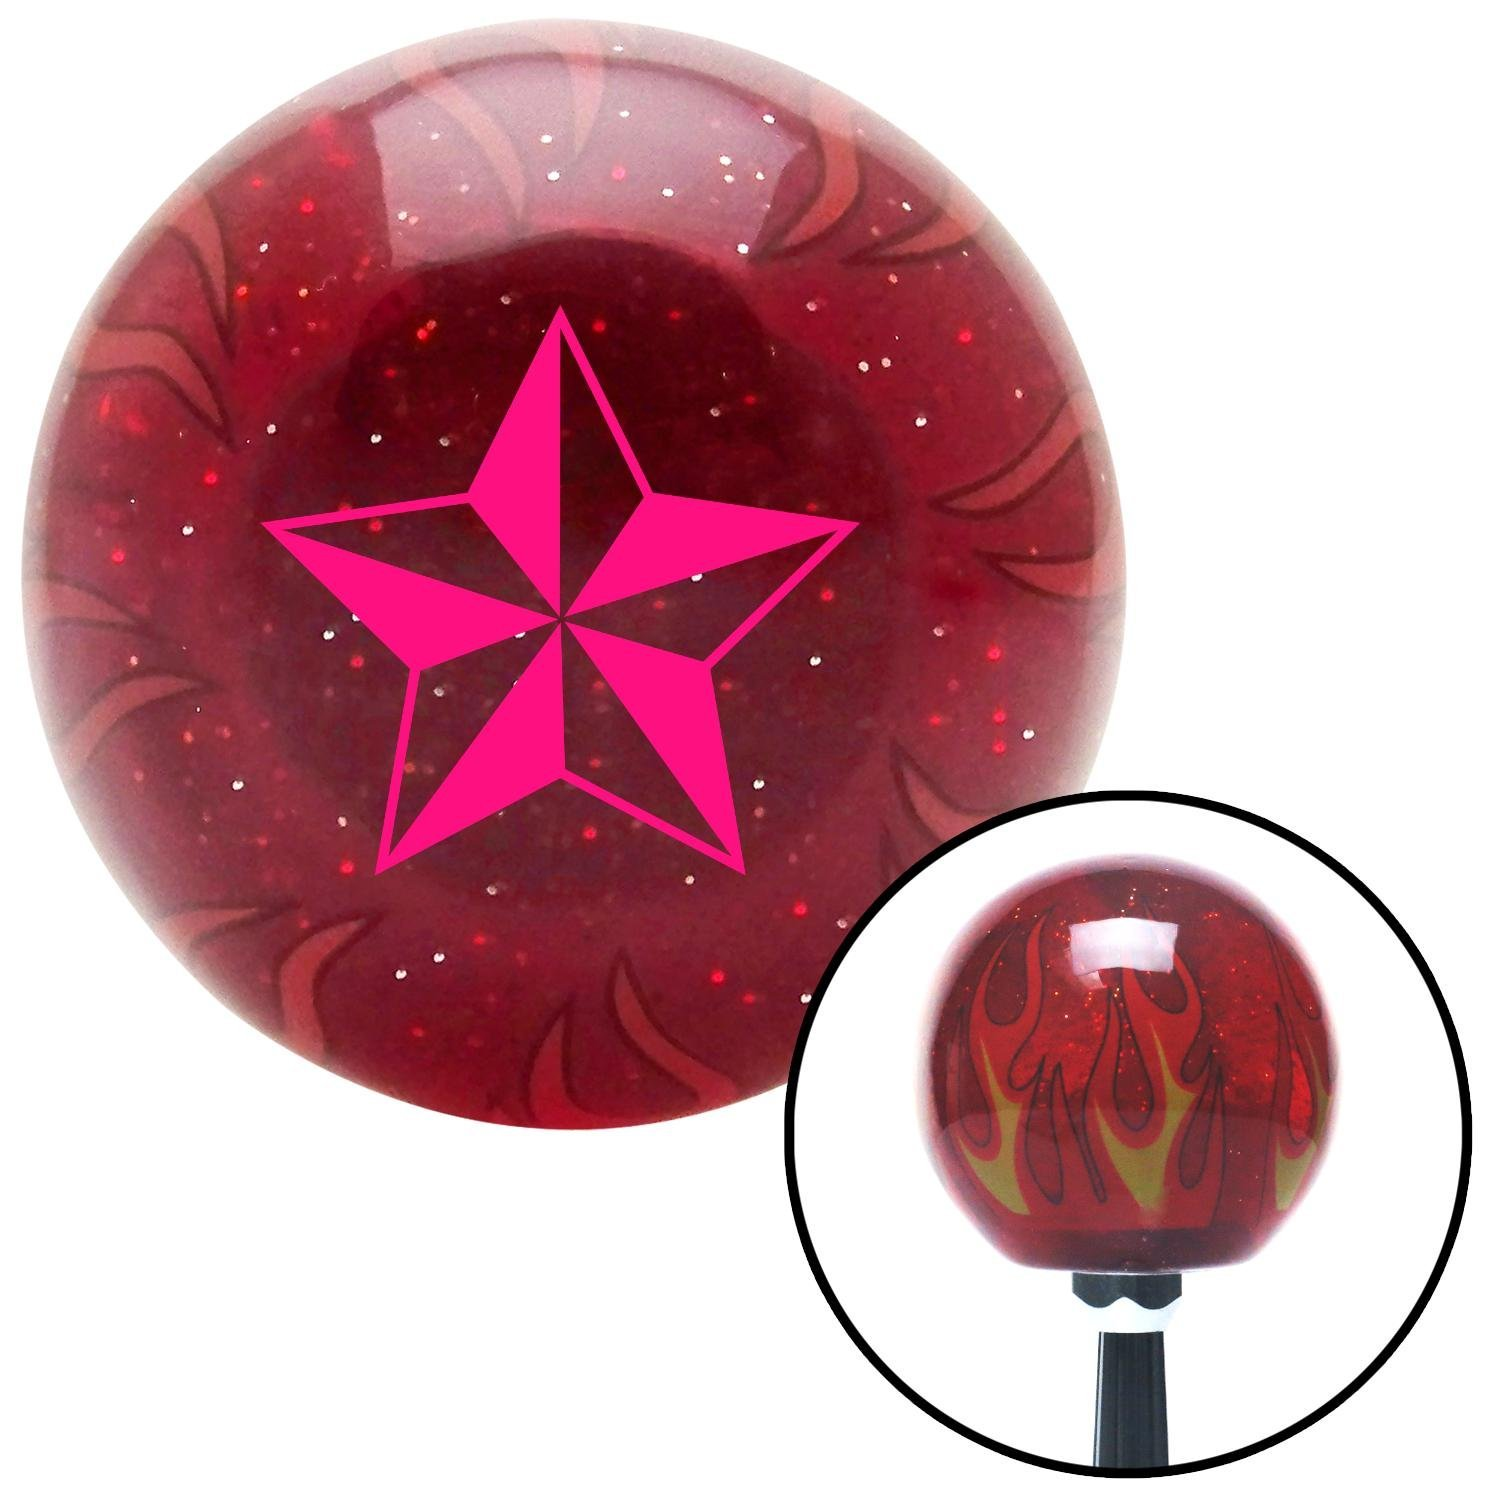 American Shifter 241871 Red Flame Metal Flake Shift Knob with M16 x 1.5 Insert Pink Tattoo Star Wide